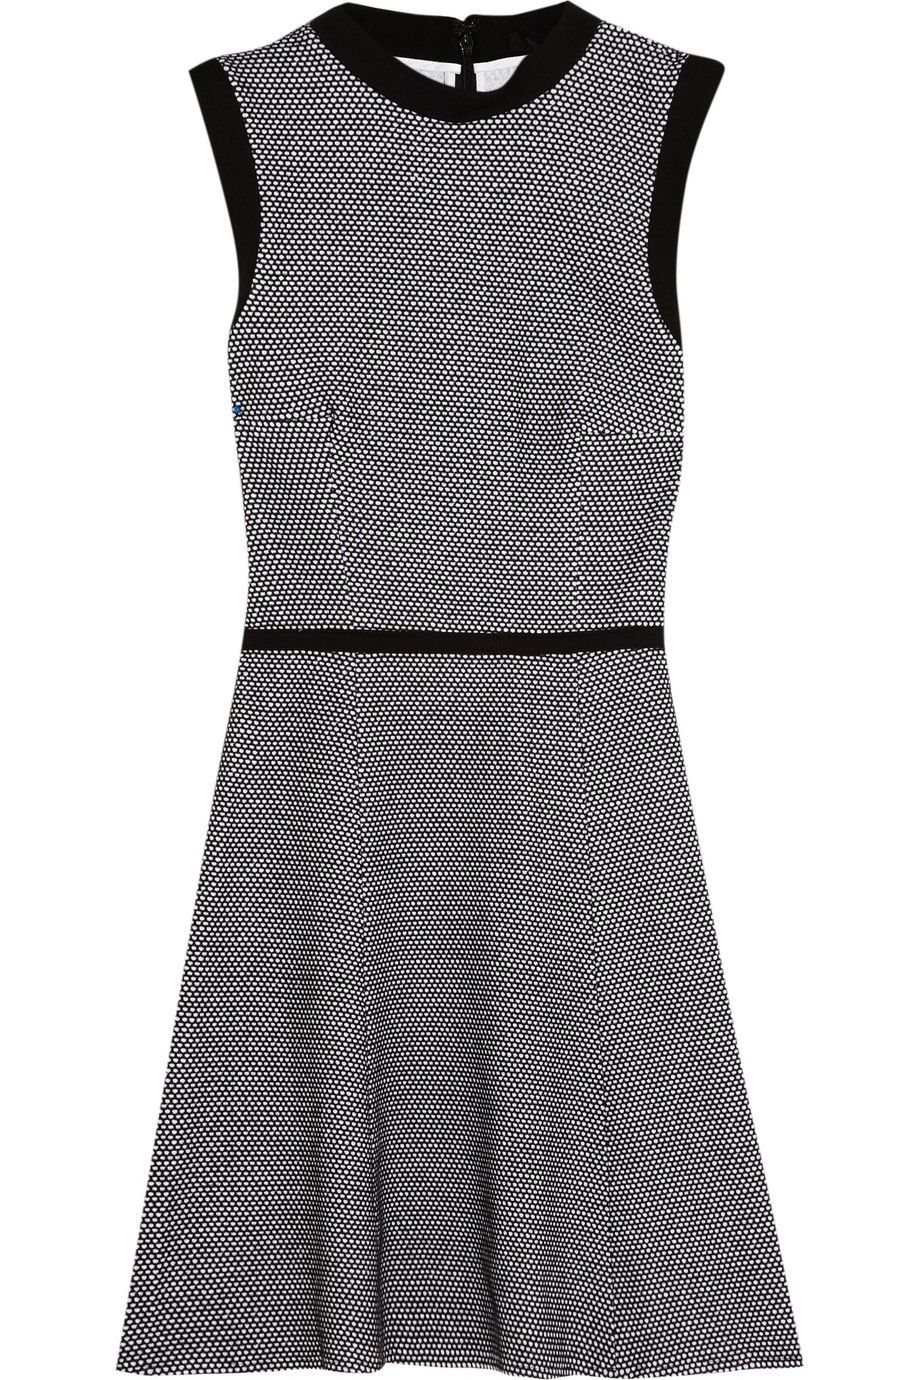 Honeycomb cotton-blend jersey mini dress | Tibi | THE OUTNET